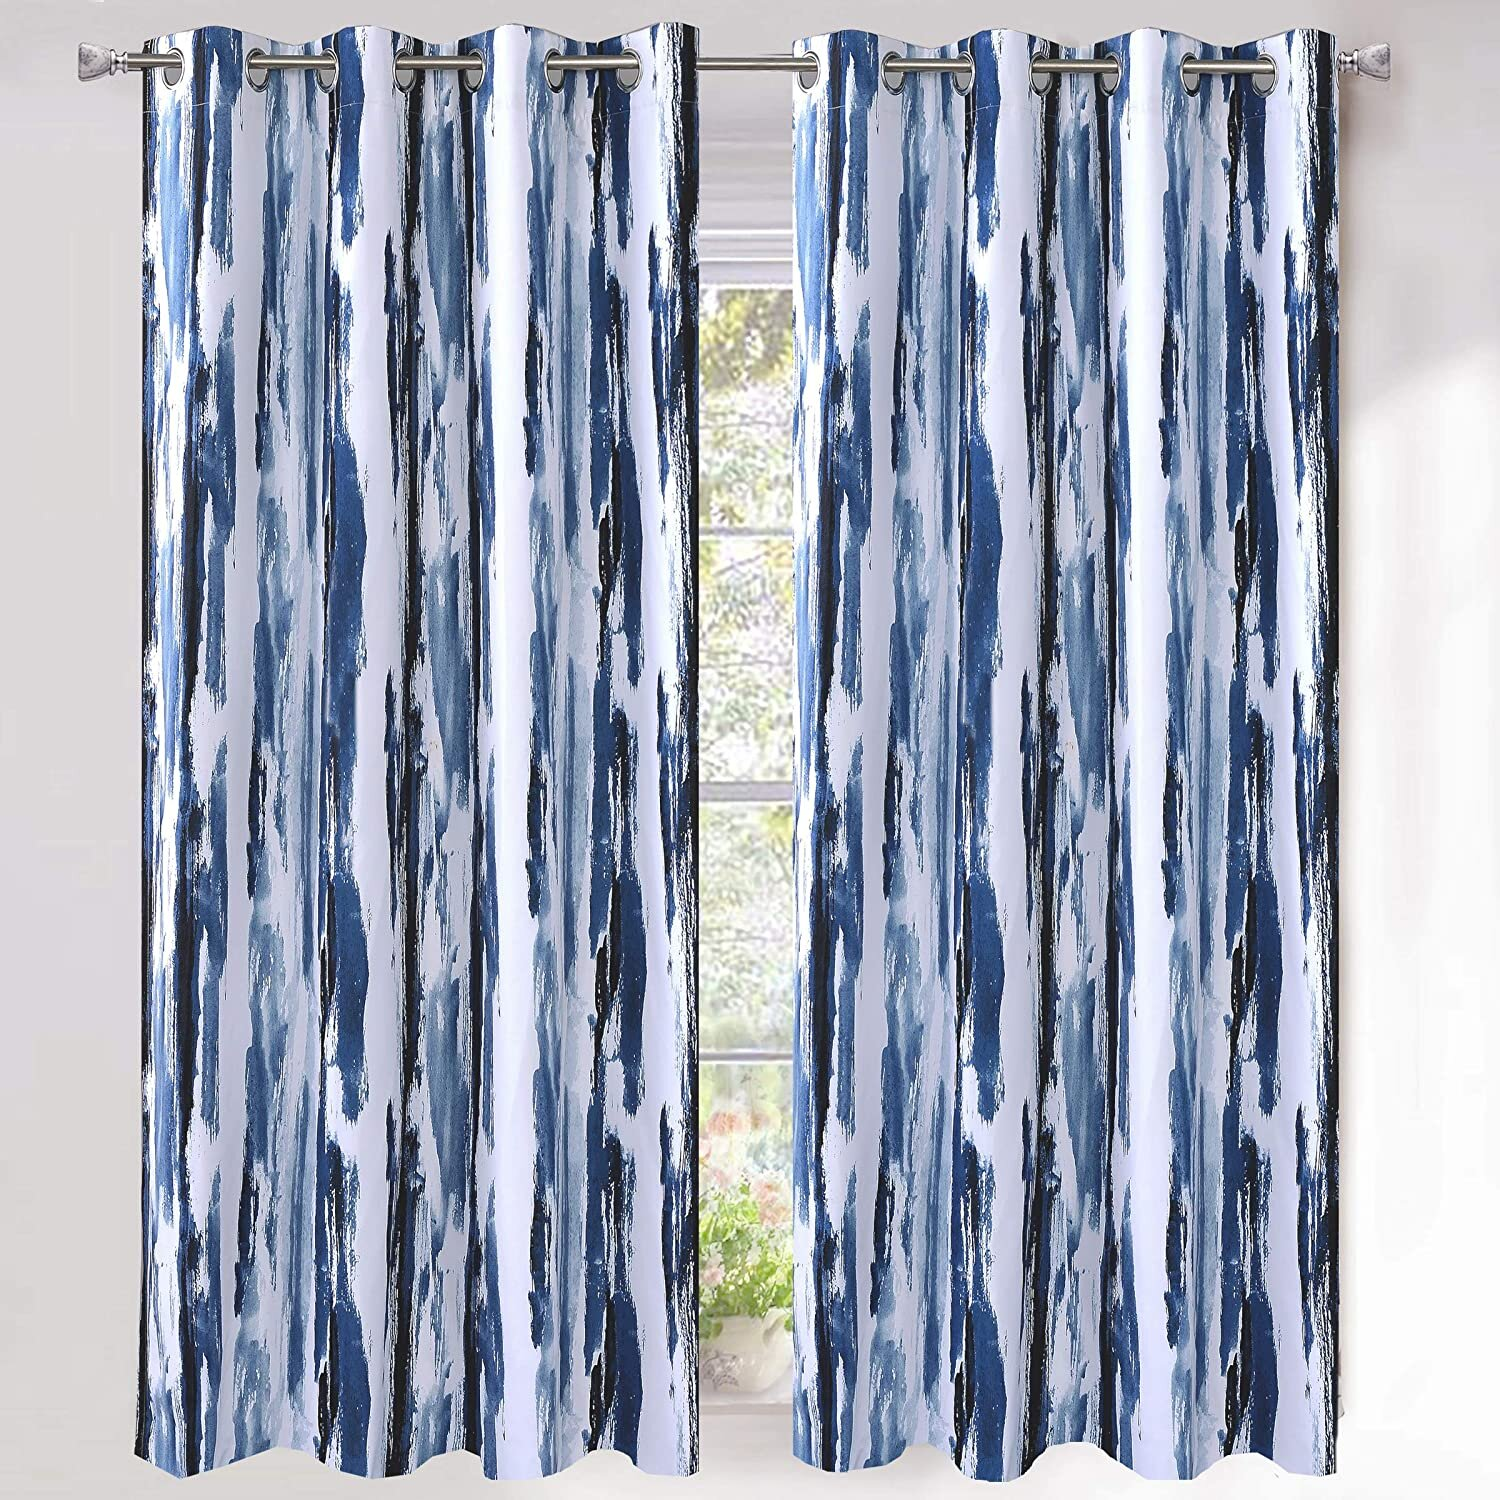 Abstract Industrial Curtains Drapes You Ll Love In 2021 Wayfair